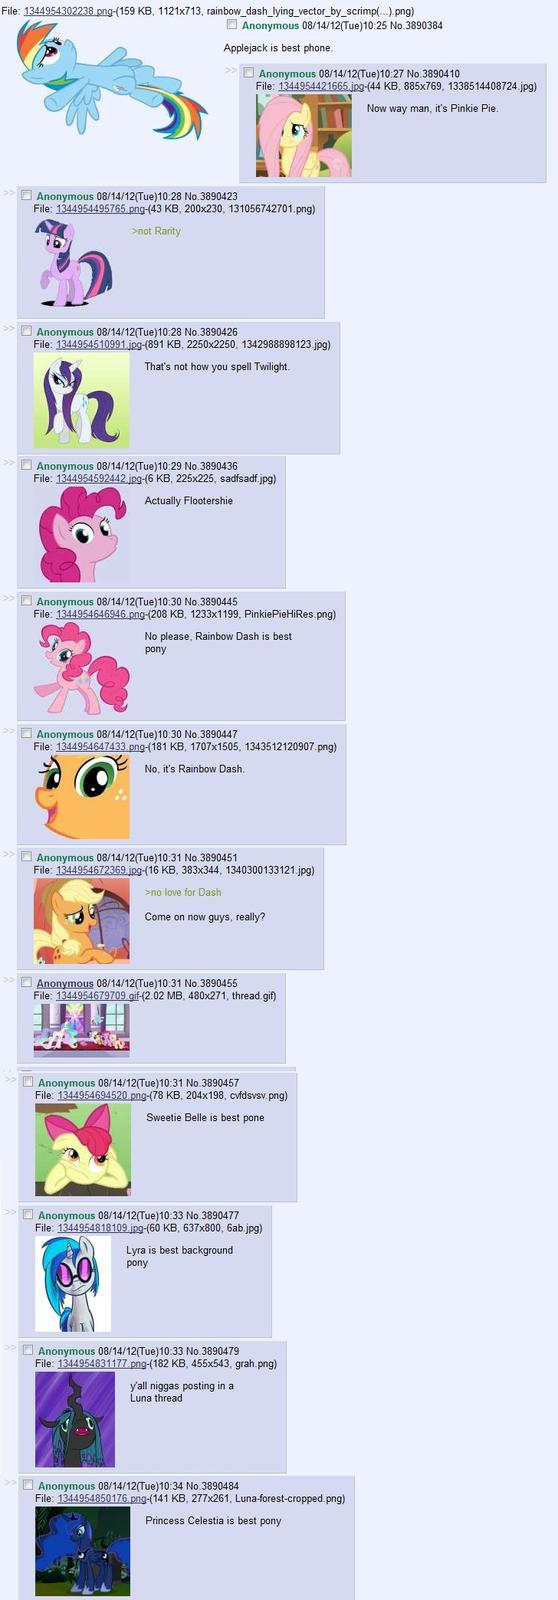 Your typical best pony discussion on /mlp/